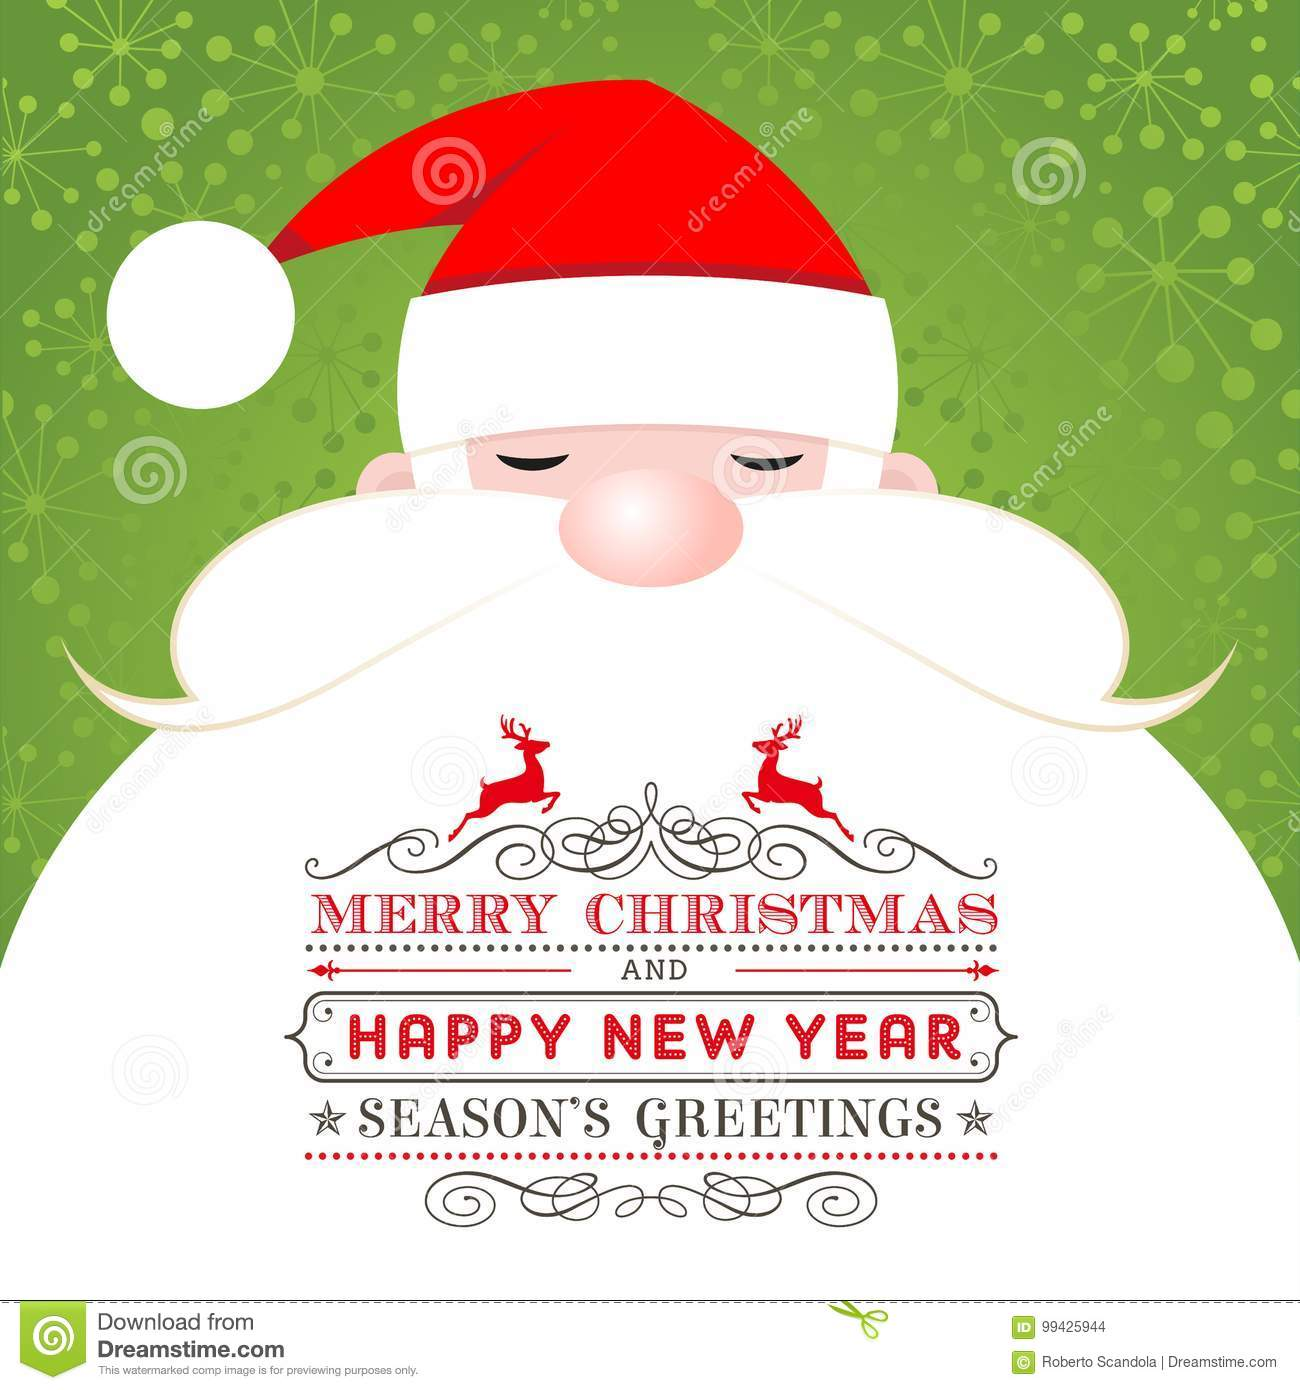 Santa claus christmas greeting card stock vector illustration of a nice christmas illustration with a funny cheerful santa suitable for christmas greeting cards or labels m4hsunfo